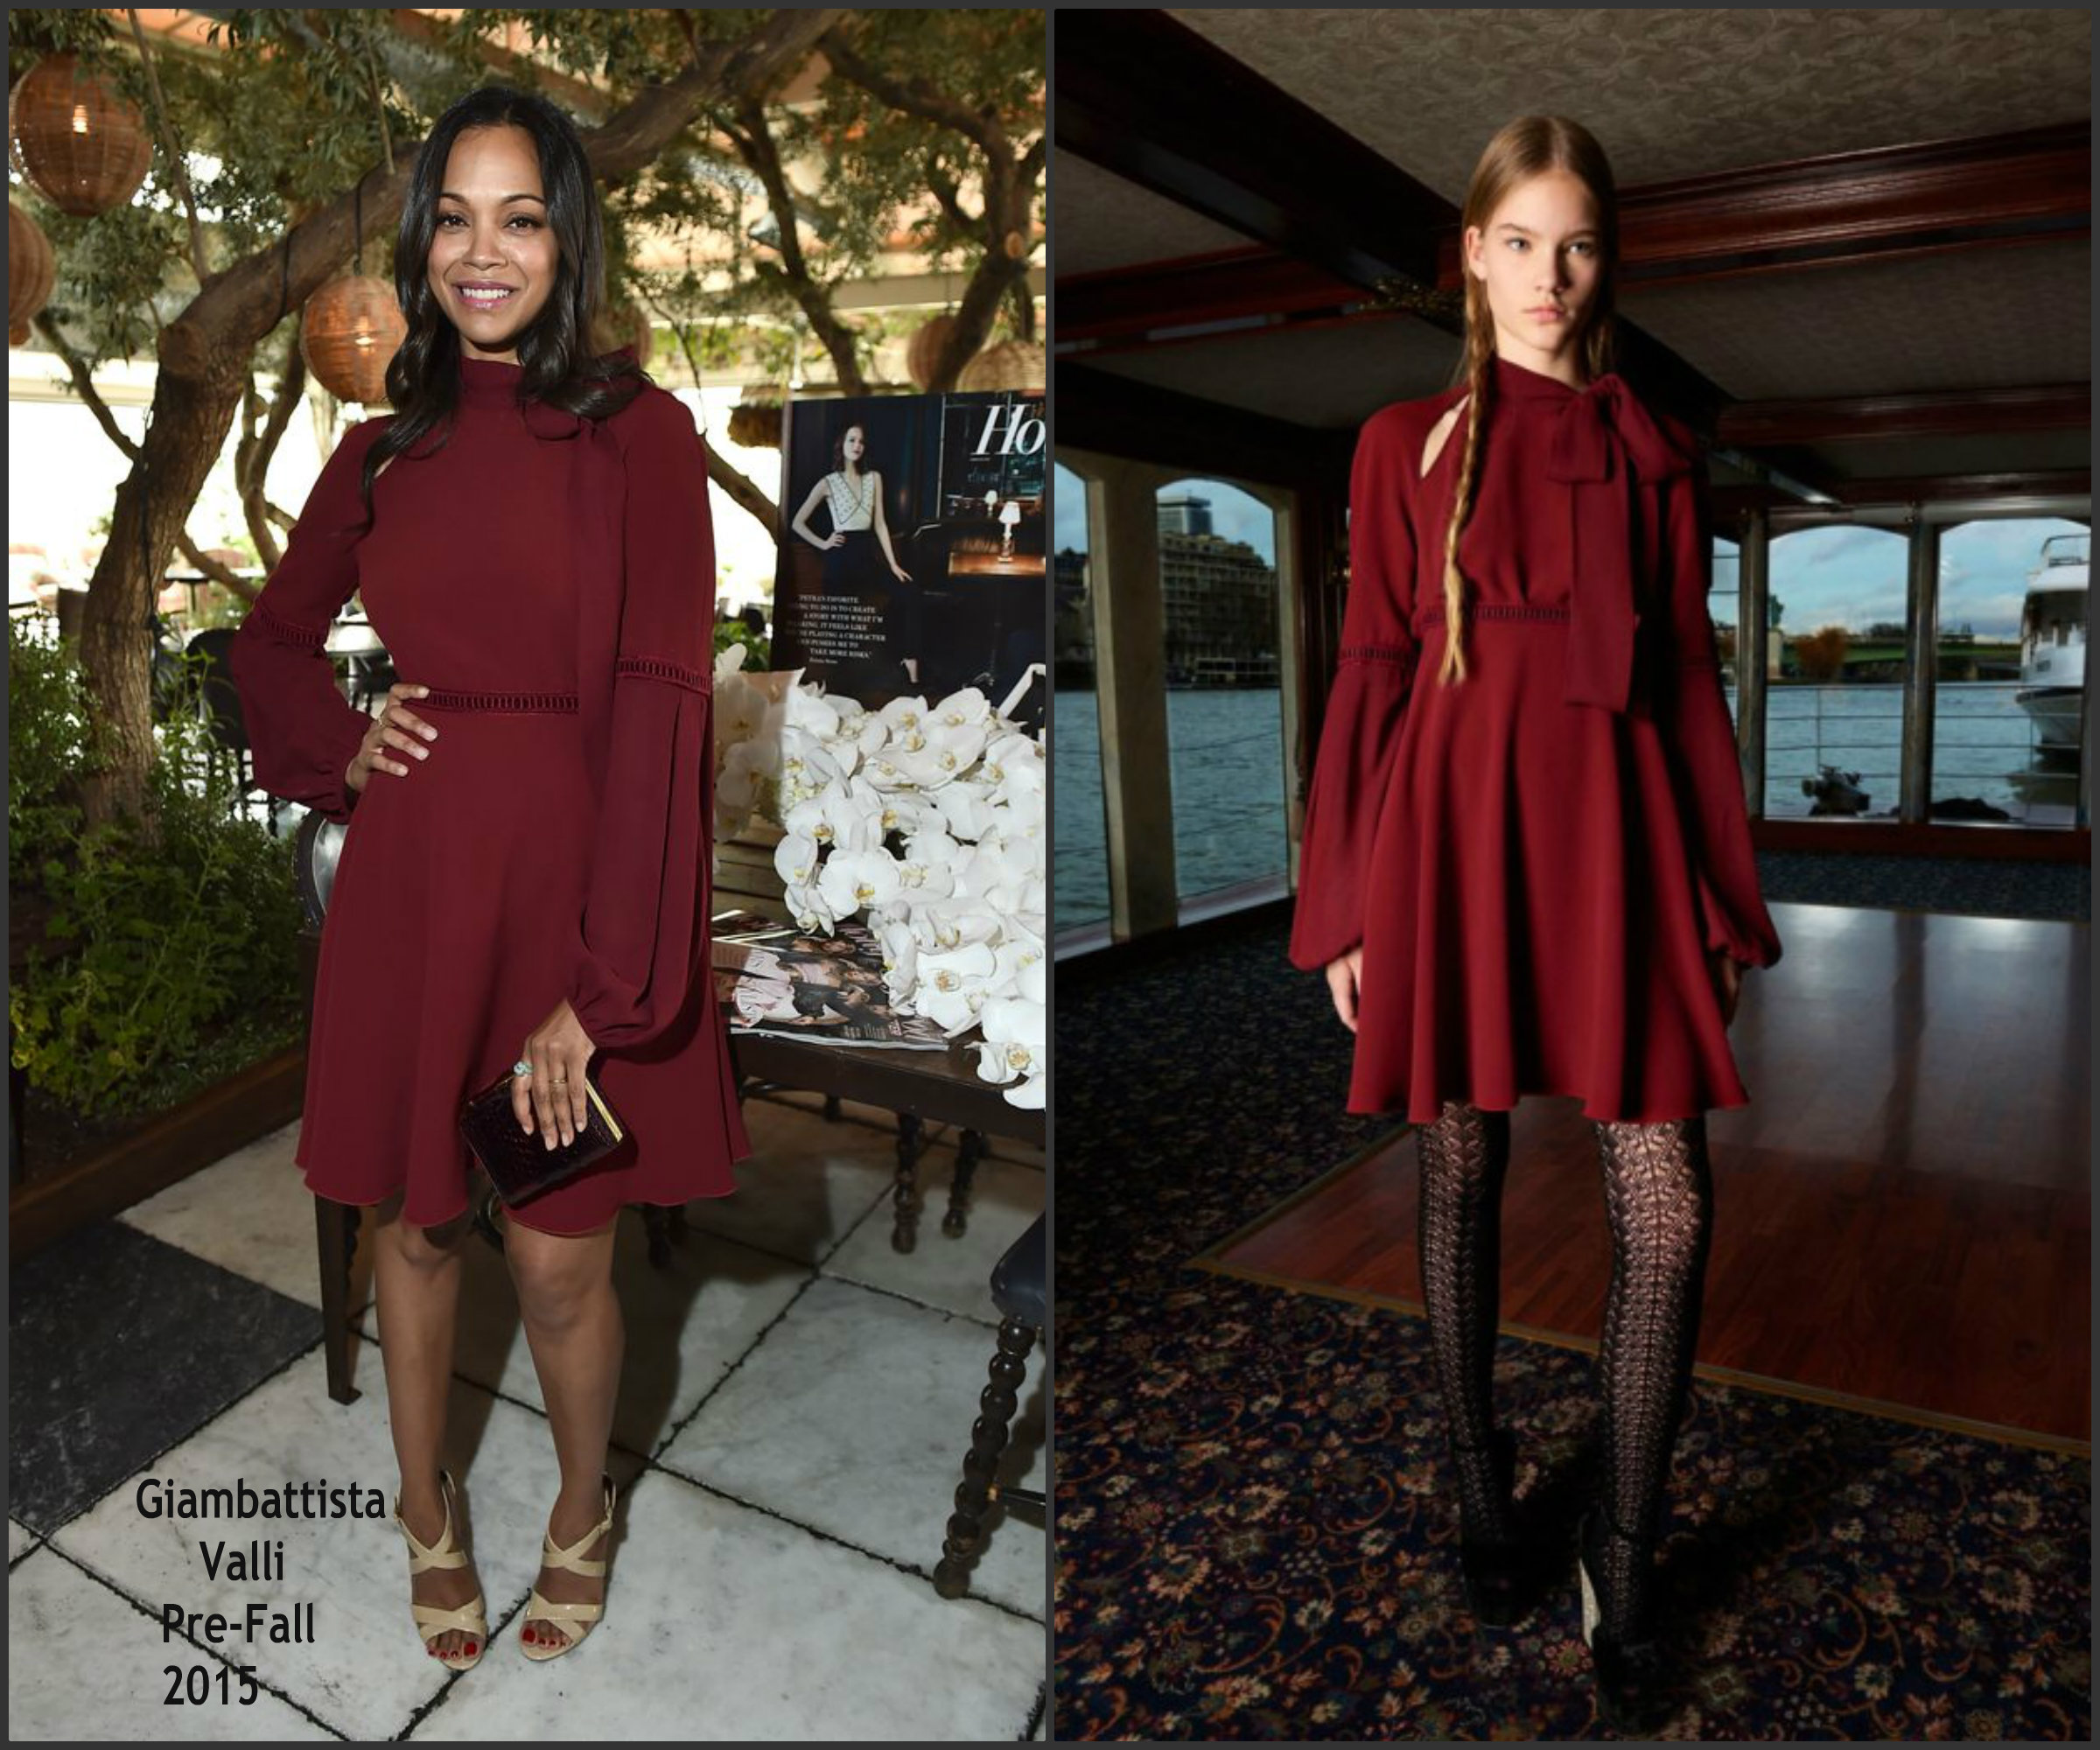 Zoe-Saldana-in-Giambattista-Valli-at-the-Hollywood-Reporters-25-Most-Powerful- Stylists-in-Hollywood-Luncheon